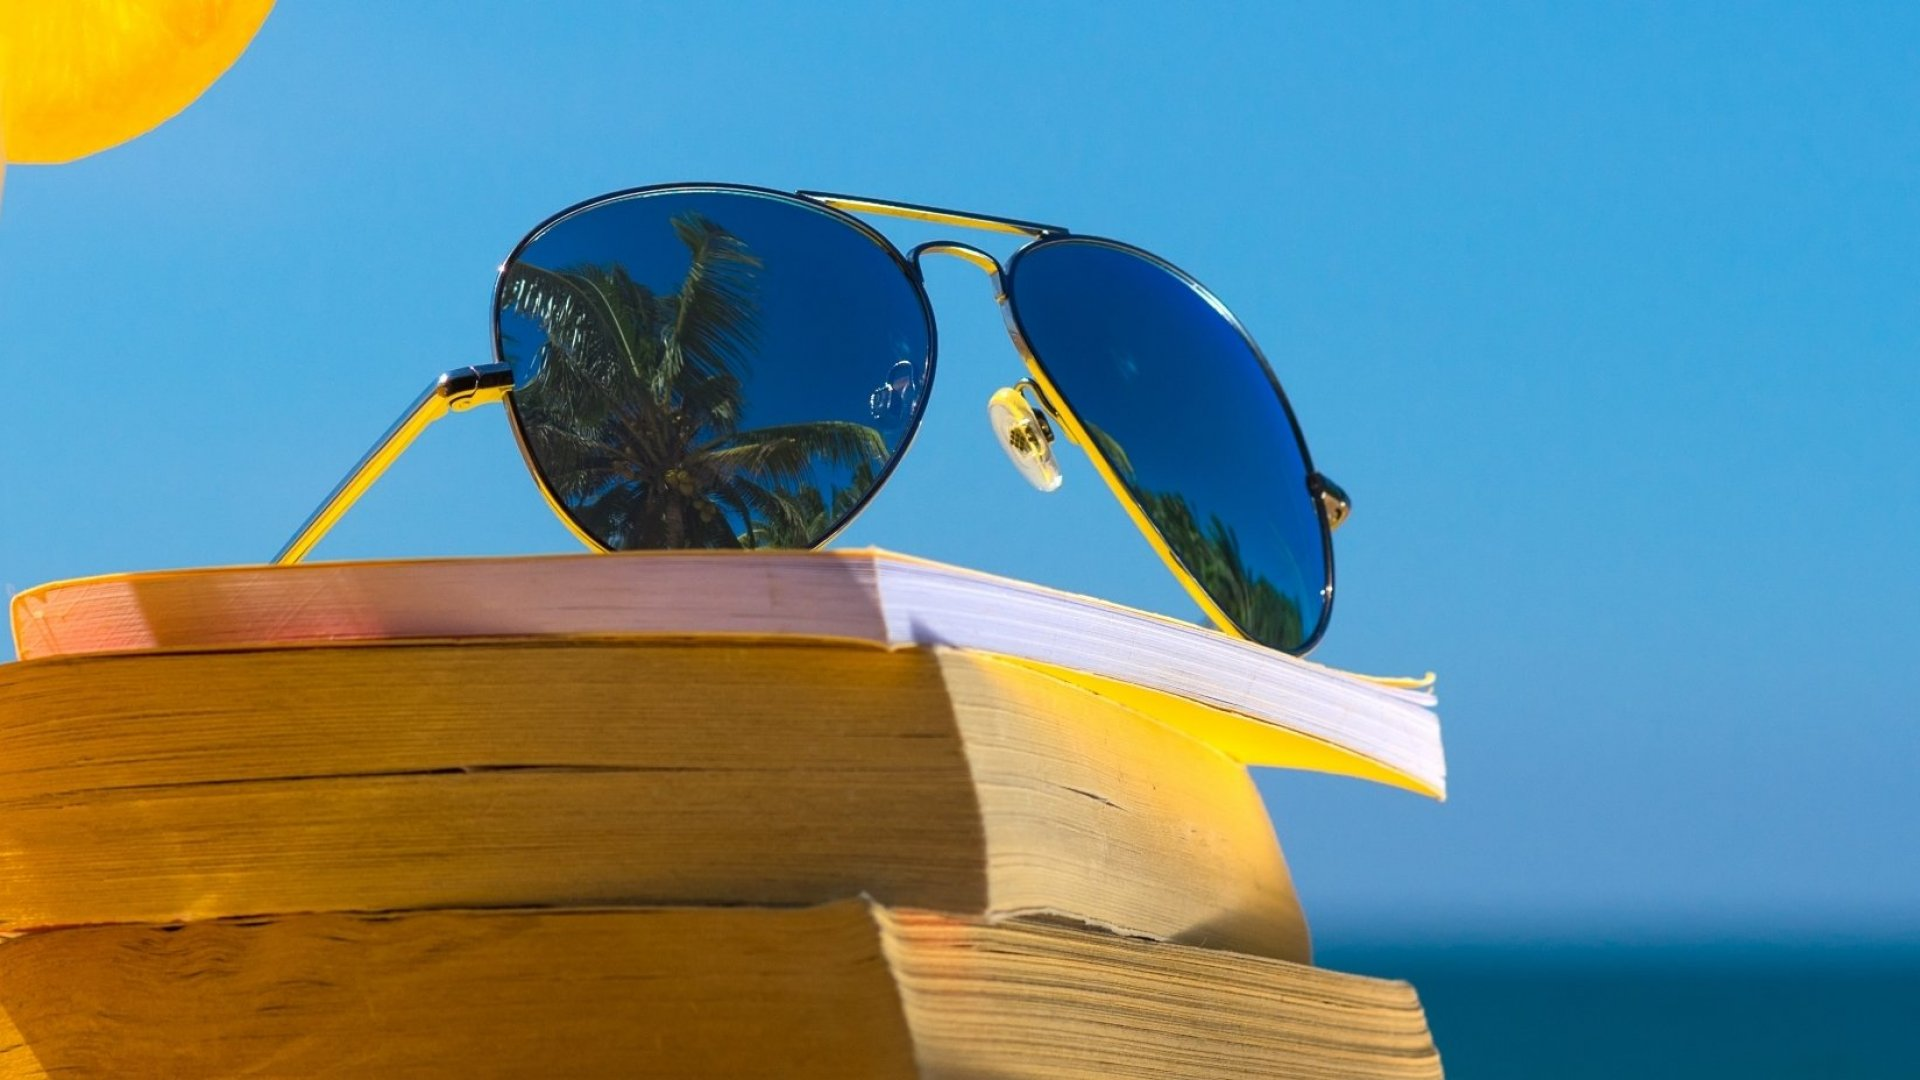 Want Some New Books for Your Summer Vacation? Bill Gates Recommends You Pack Any of These 5